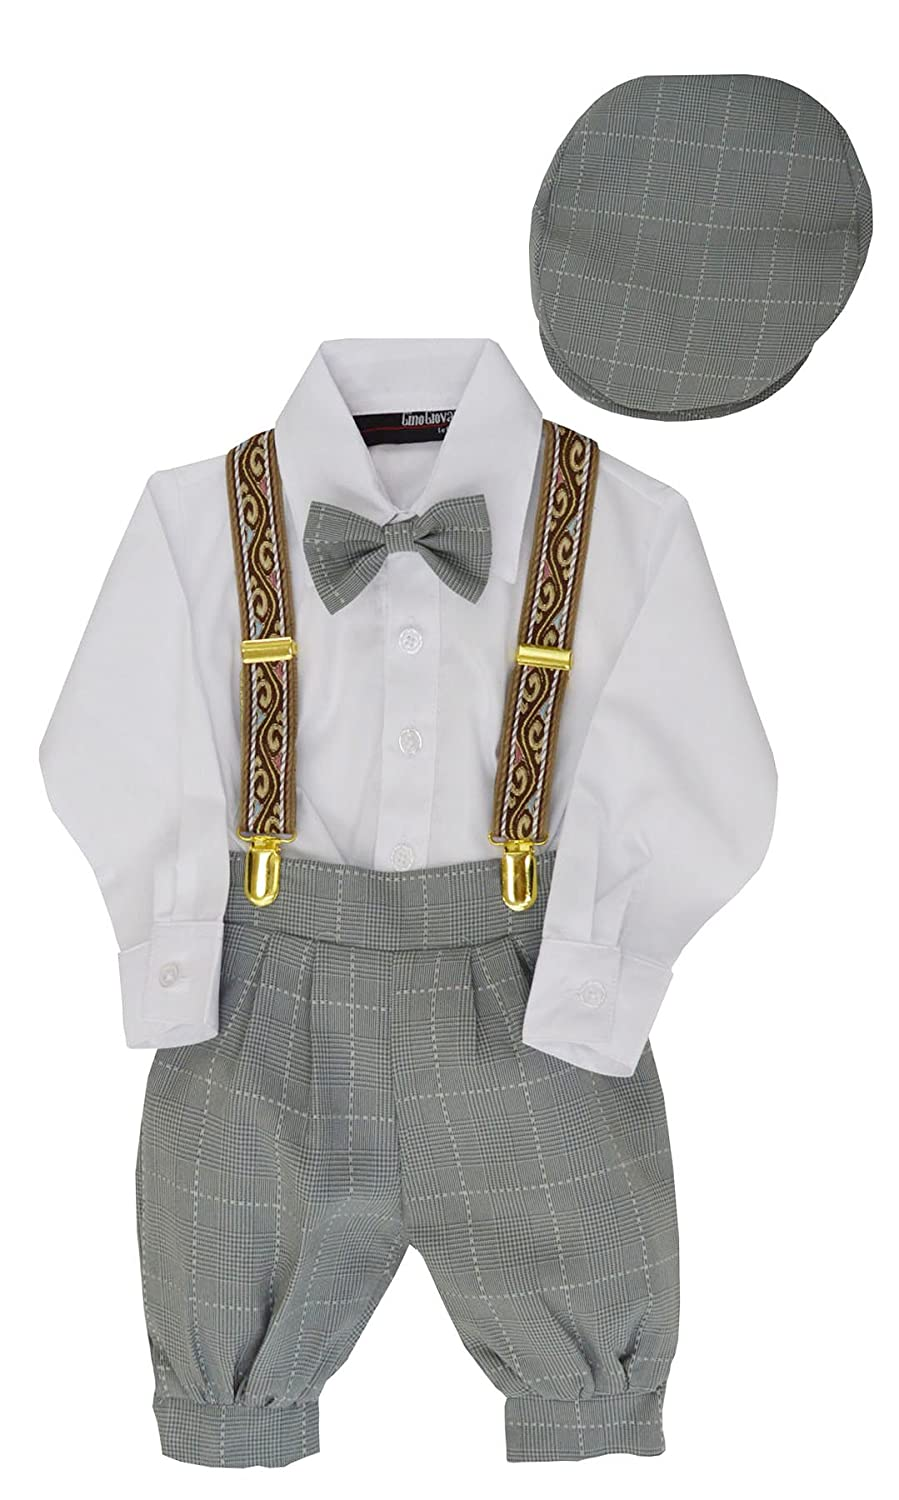 Kids 1950s Clothing & Costumes: Girls, Boys, Toddlers Gino Giovanni Boys Vintage Style Knickers Outfit Suspenders Set $29.99 AT vintagedancer.com